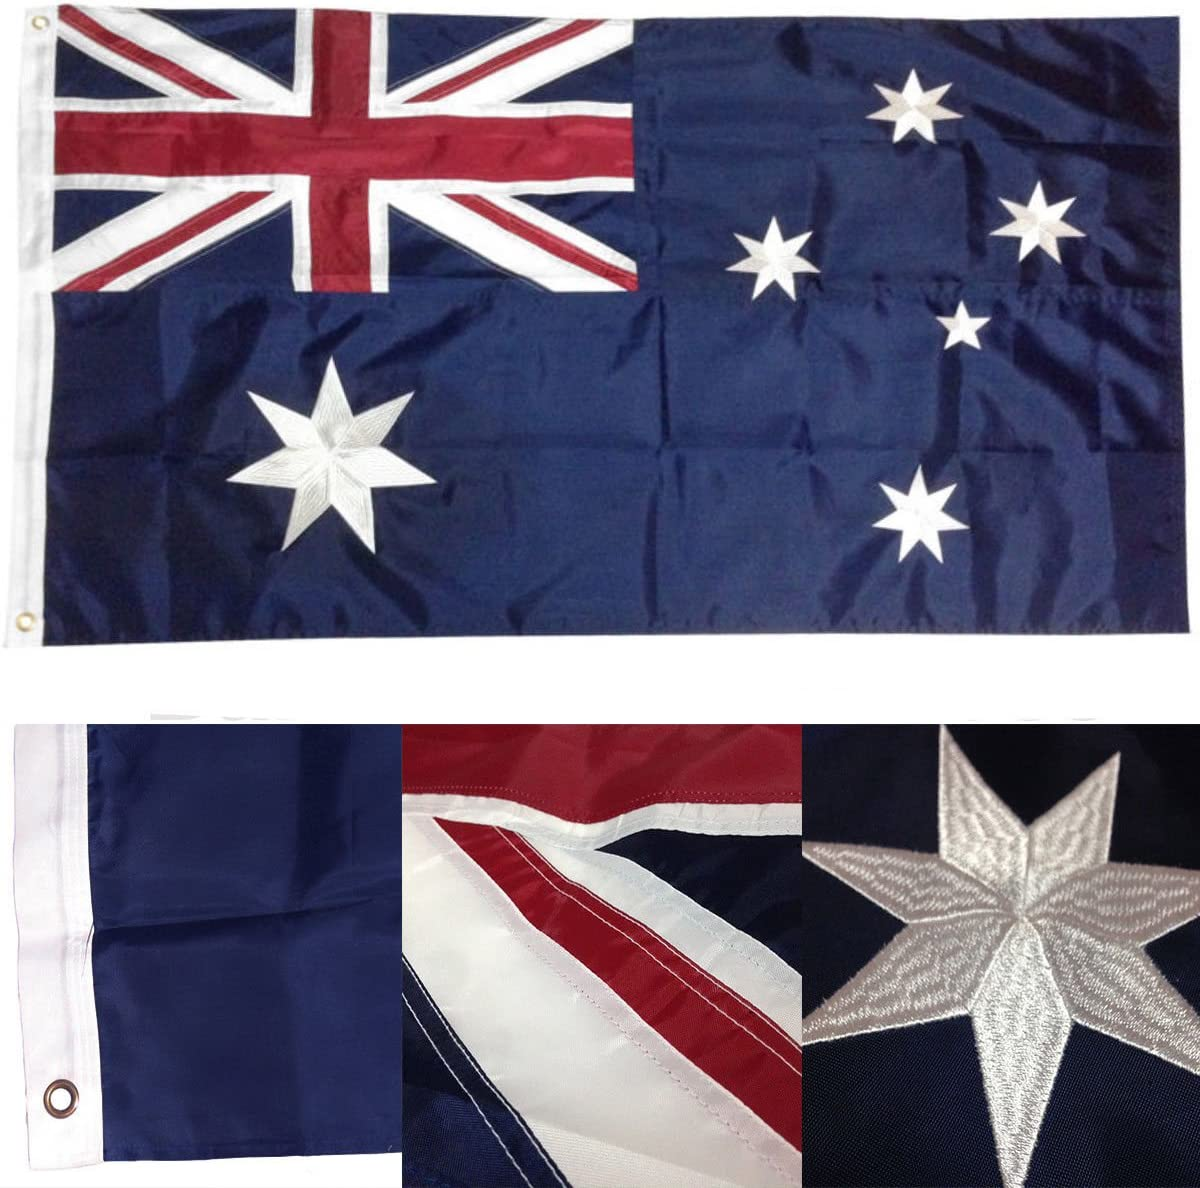 3x5 Embroidered Australia Australian 210D Sewn Nylon Flag PREMIUM Vivid Color and UV Fade BEST Garden Outdor Decor Resistant Canvas Header and polyester material FLAG